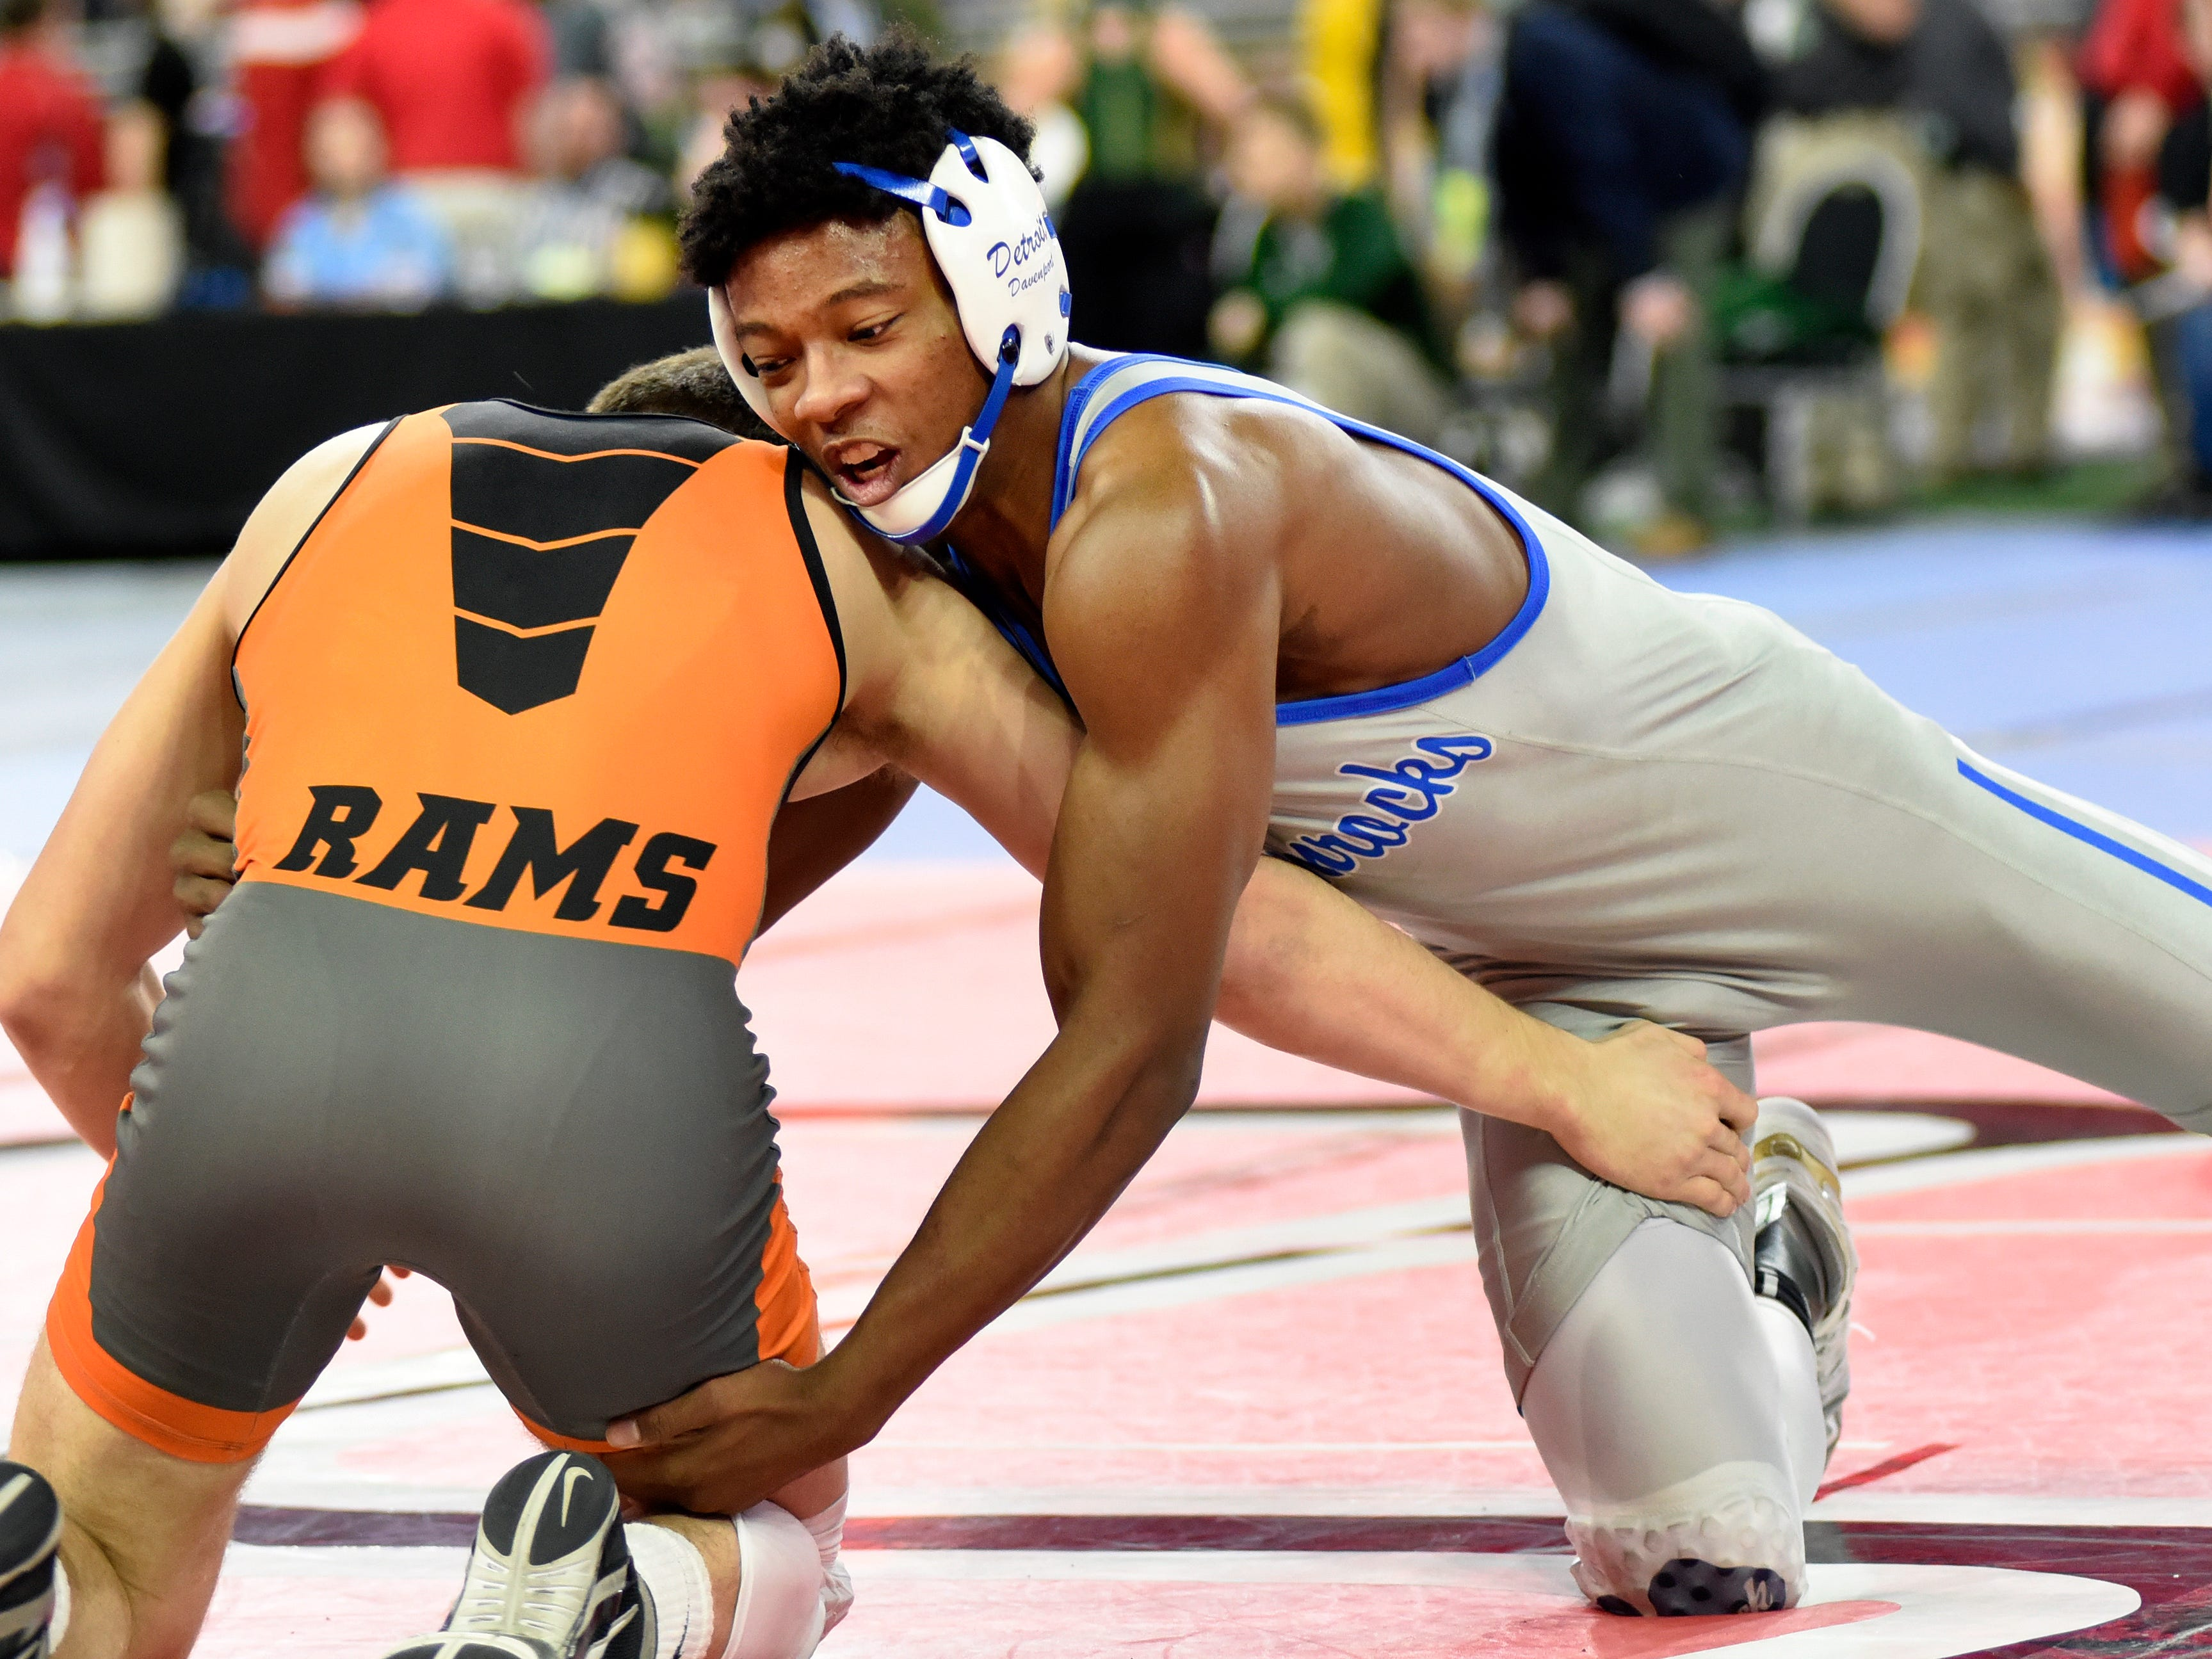 Kevon Davenport of Detroit Catholic Central, right, wrestles Jack Richardson of Rockford at 145 pounds, Friday, March 1, 2019 during the MHSAA wrestling quarterfinals held at Ford Field in Detroit.  Davenport won by pin over Richardson.